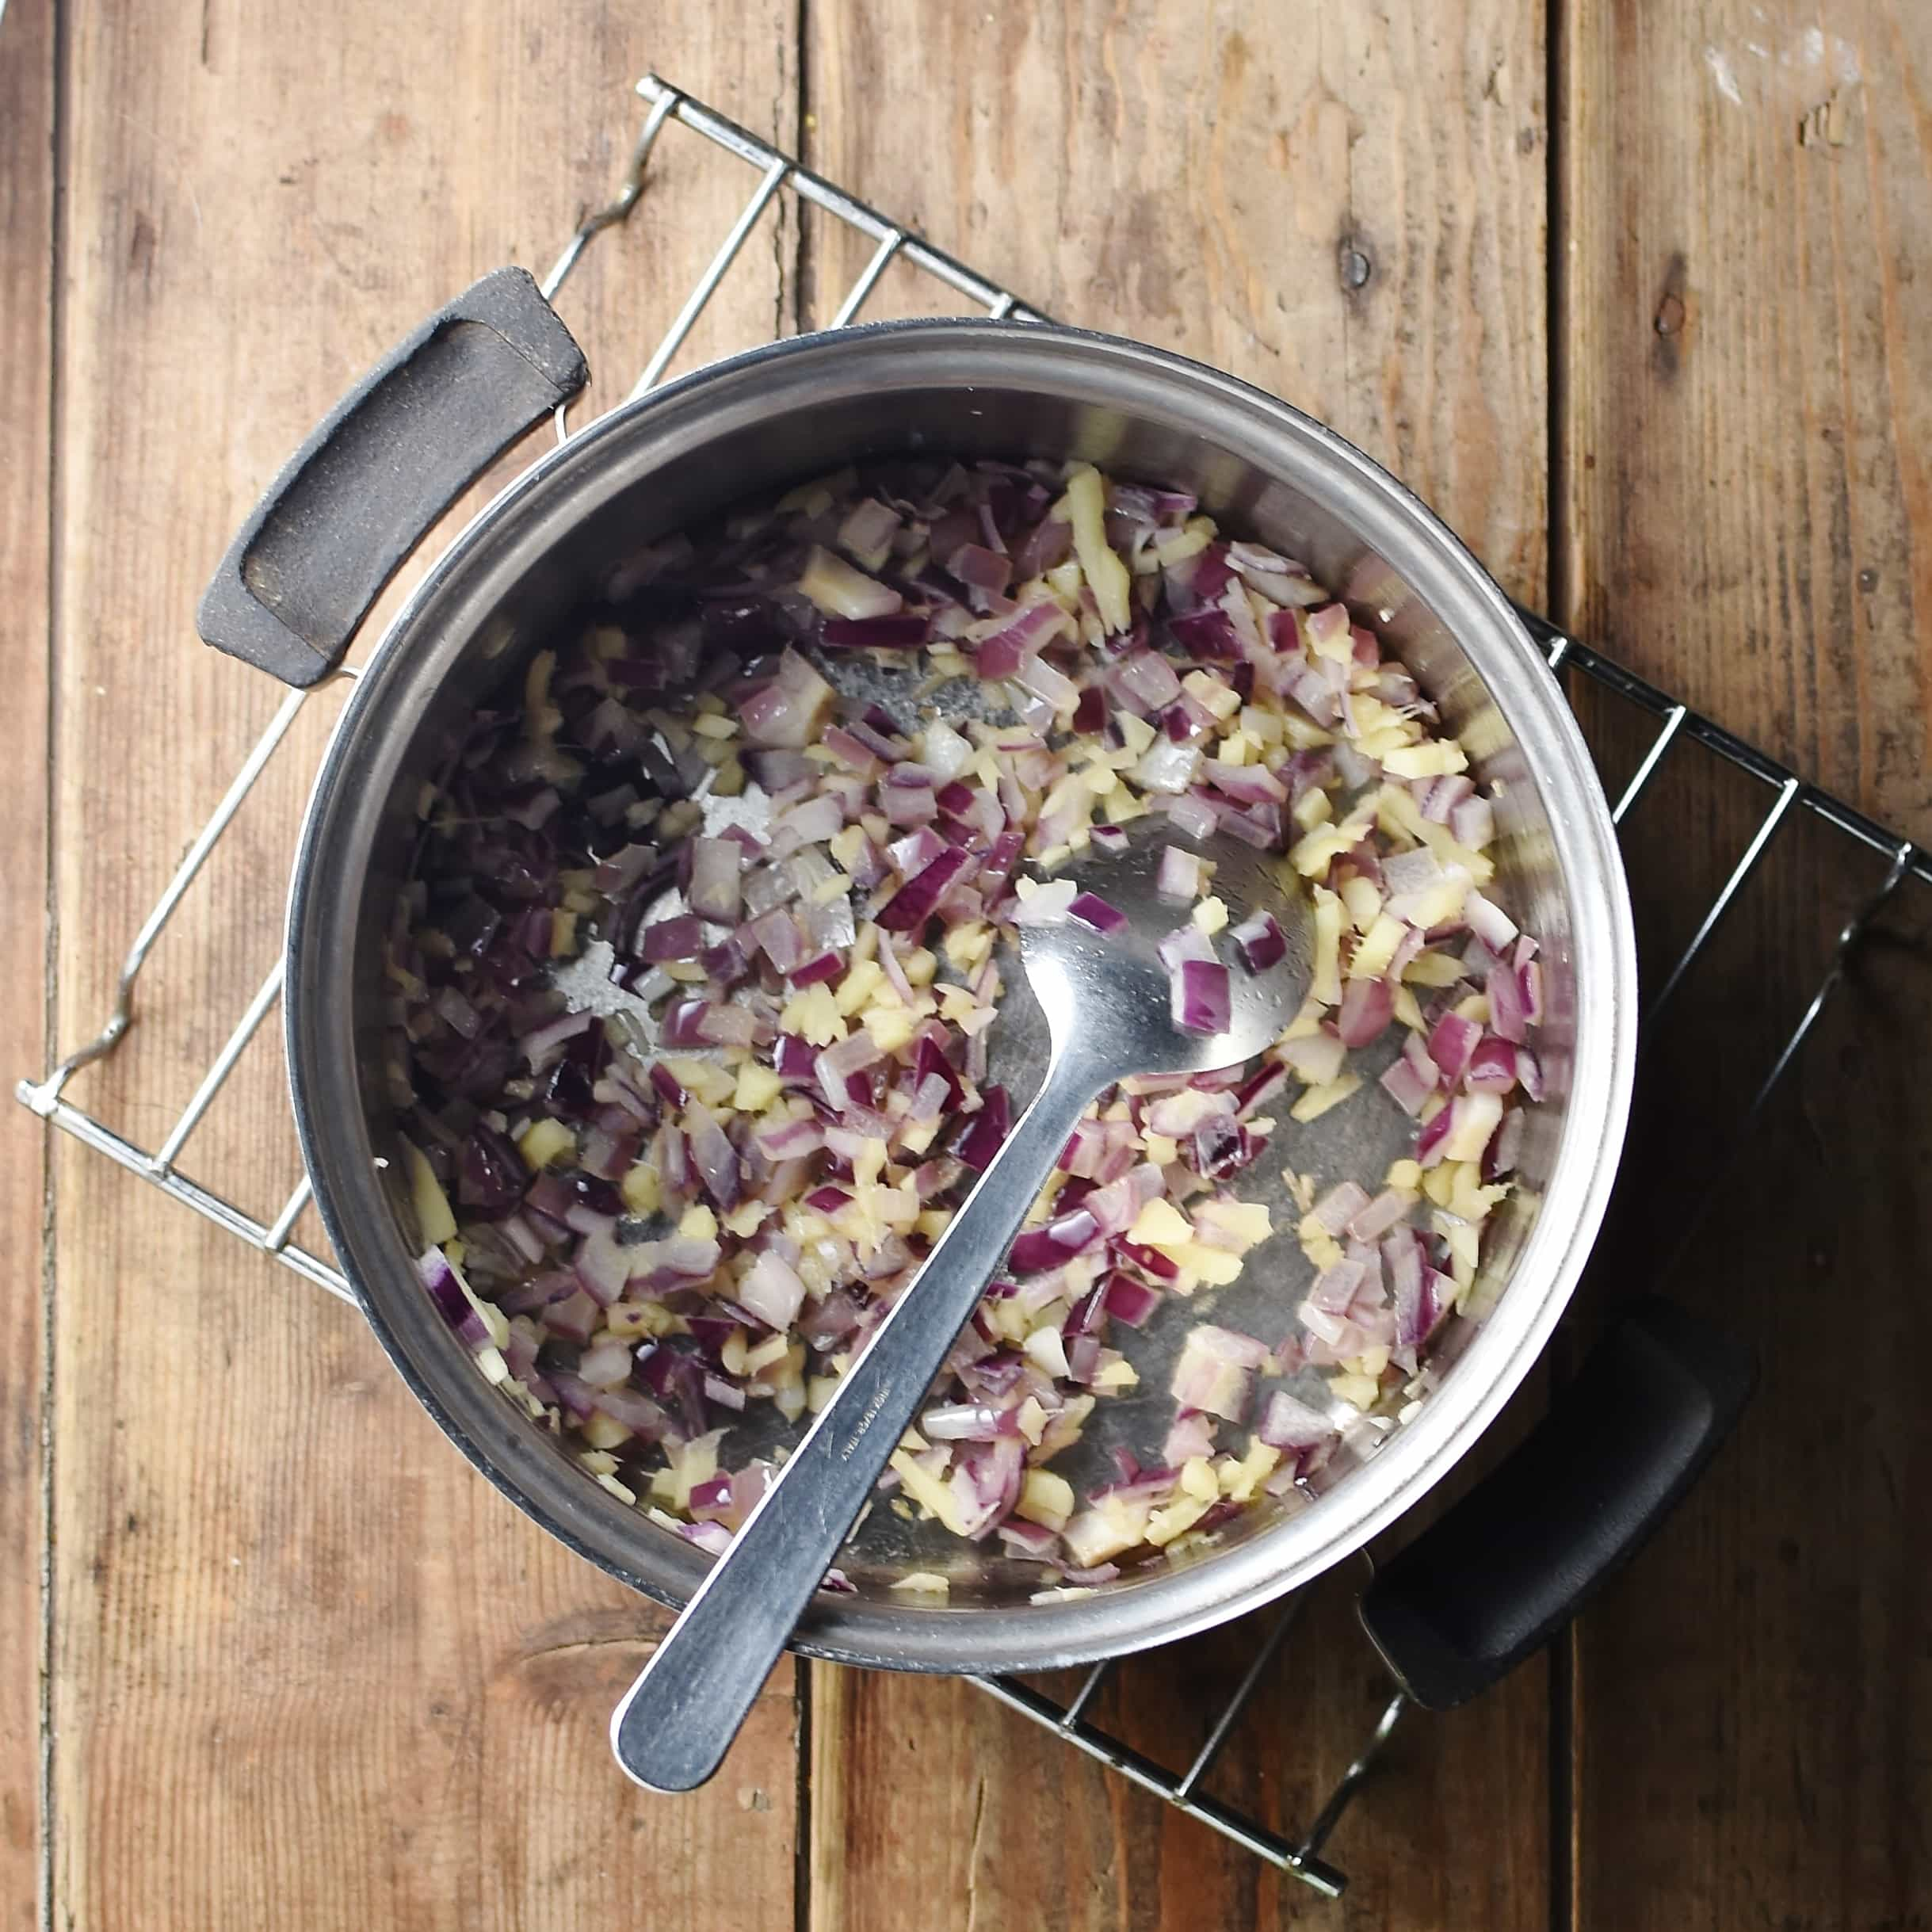 Chopped ginger and red onions in pot with spoon on rack.